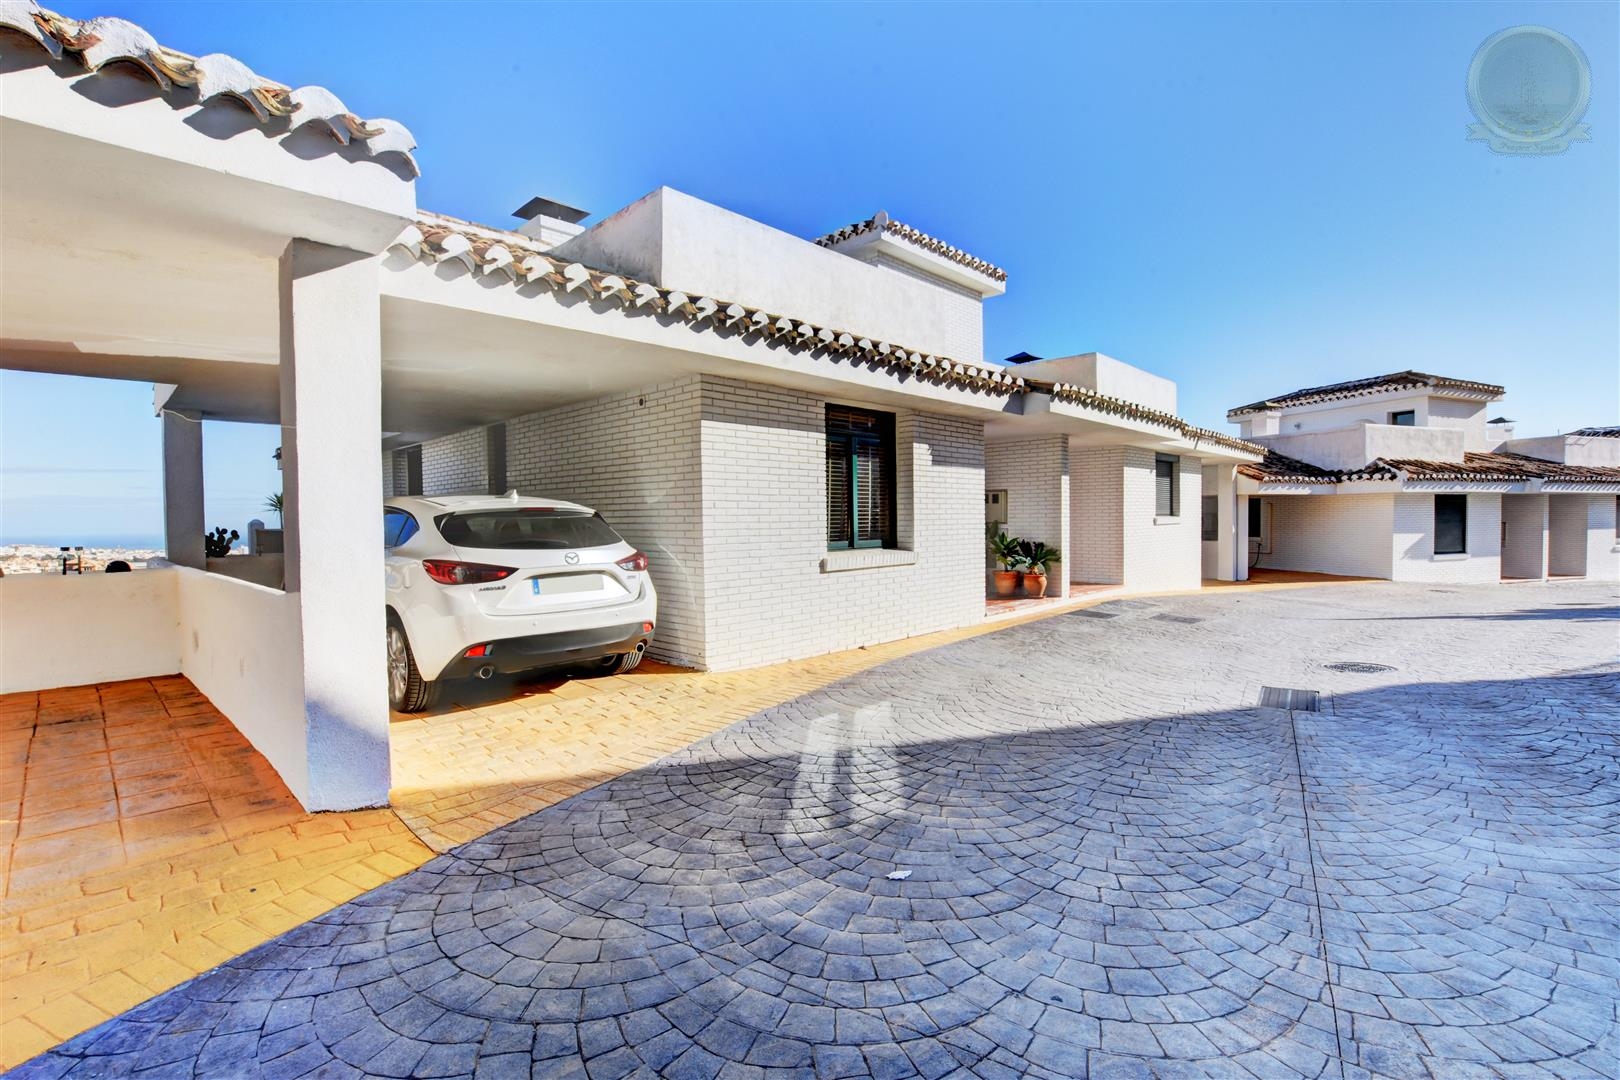 Townhouse for Sale in Benalmadena Pueblo